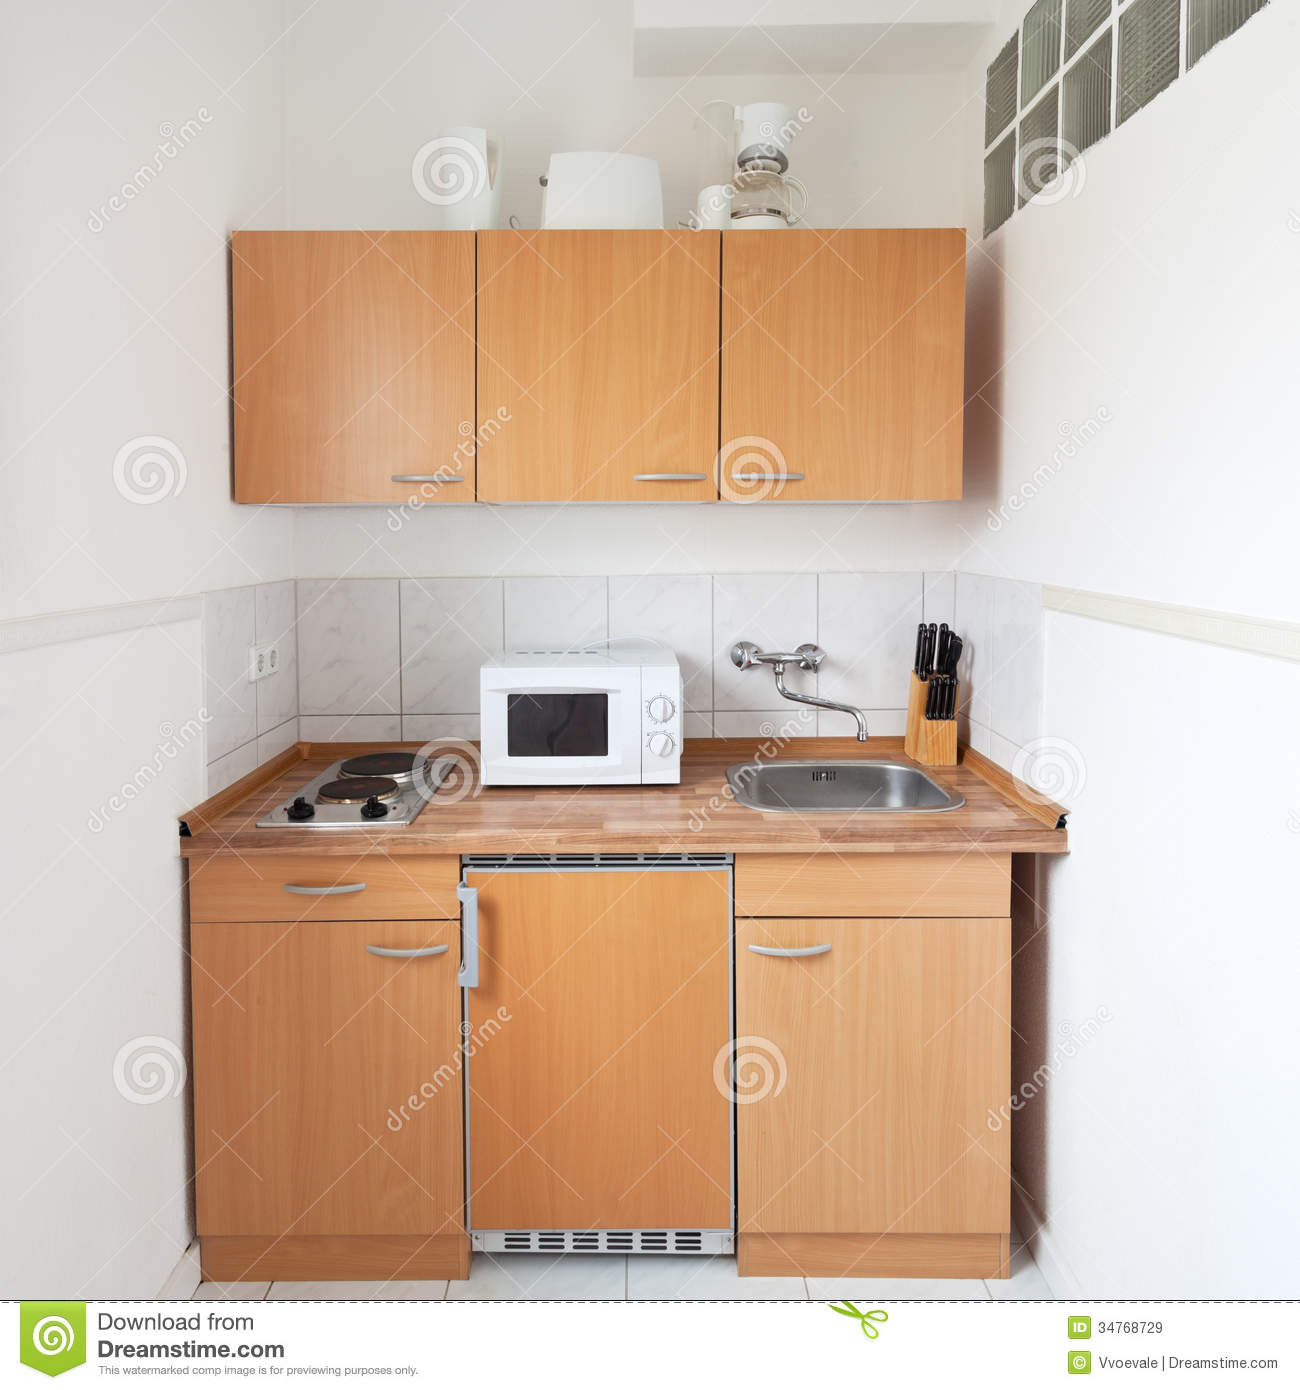 Simple kitchen with furniture set stock image image for Kitchen setting pictures